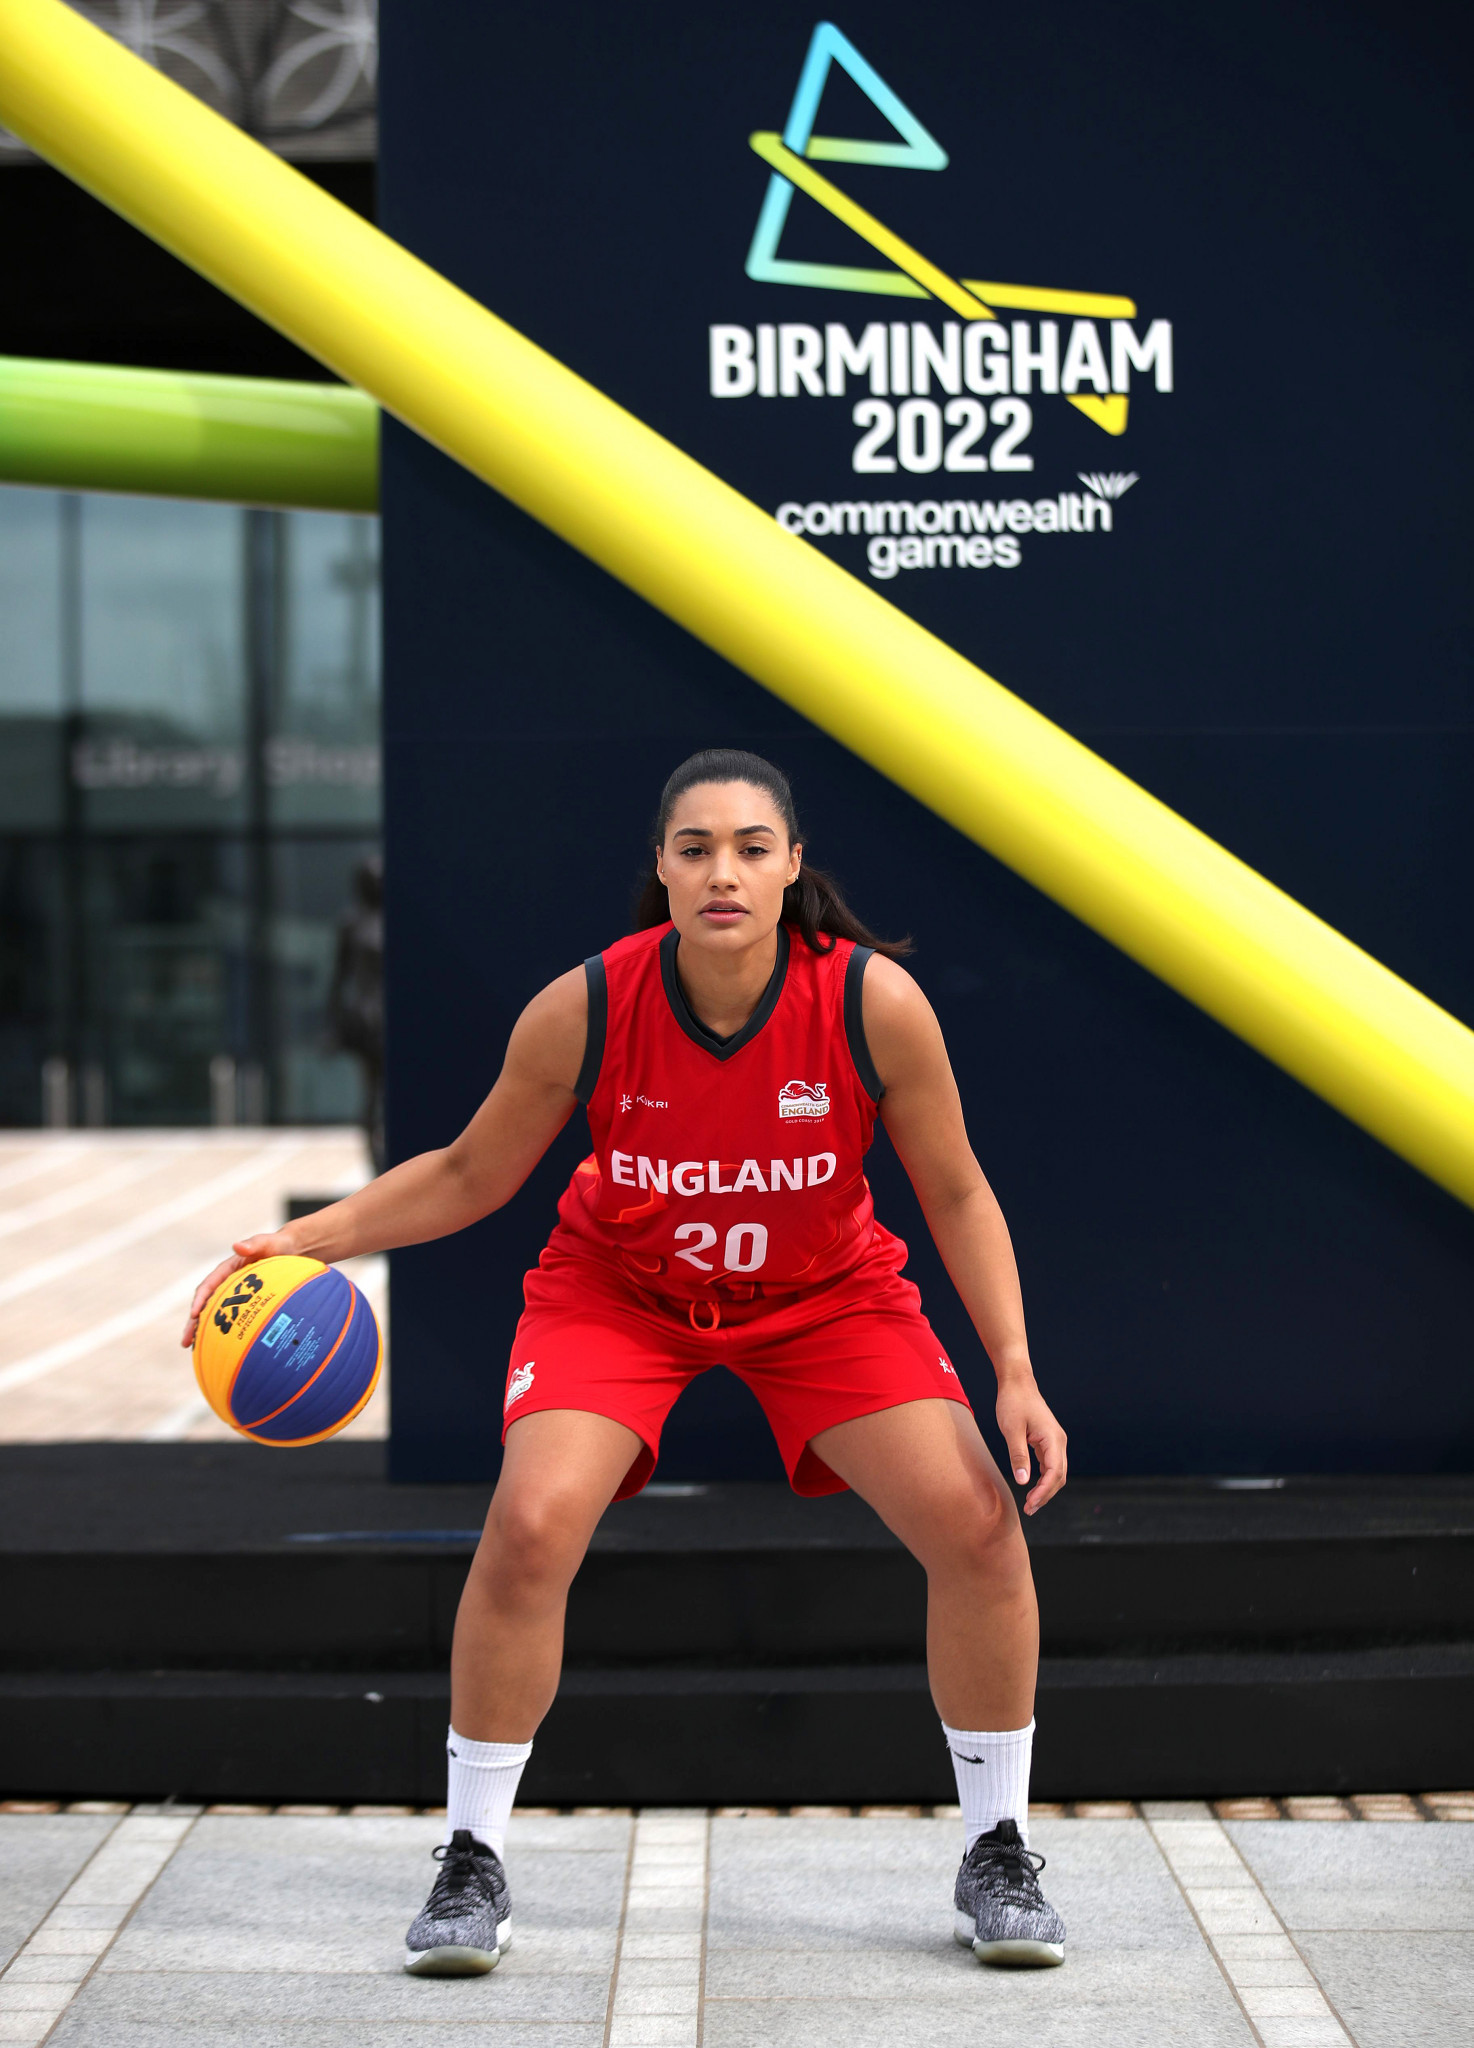 Birmingham 2022 to award more medals to women than men